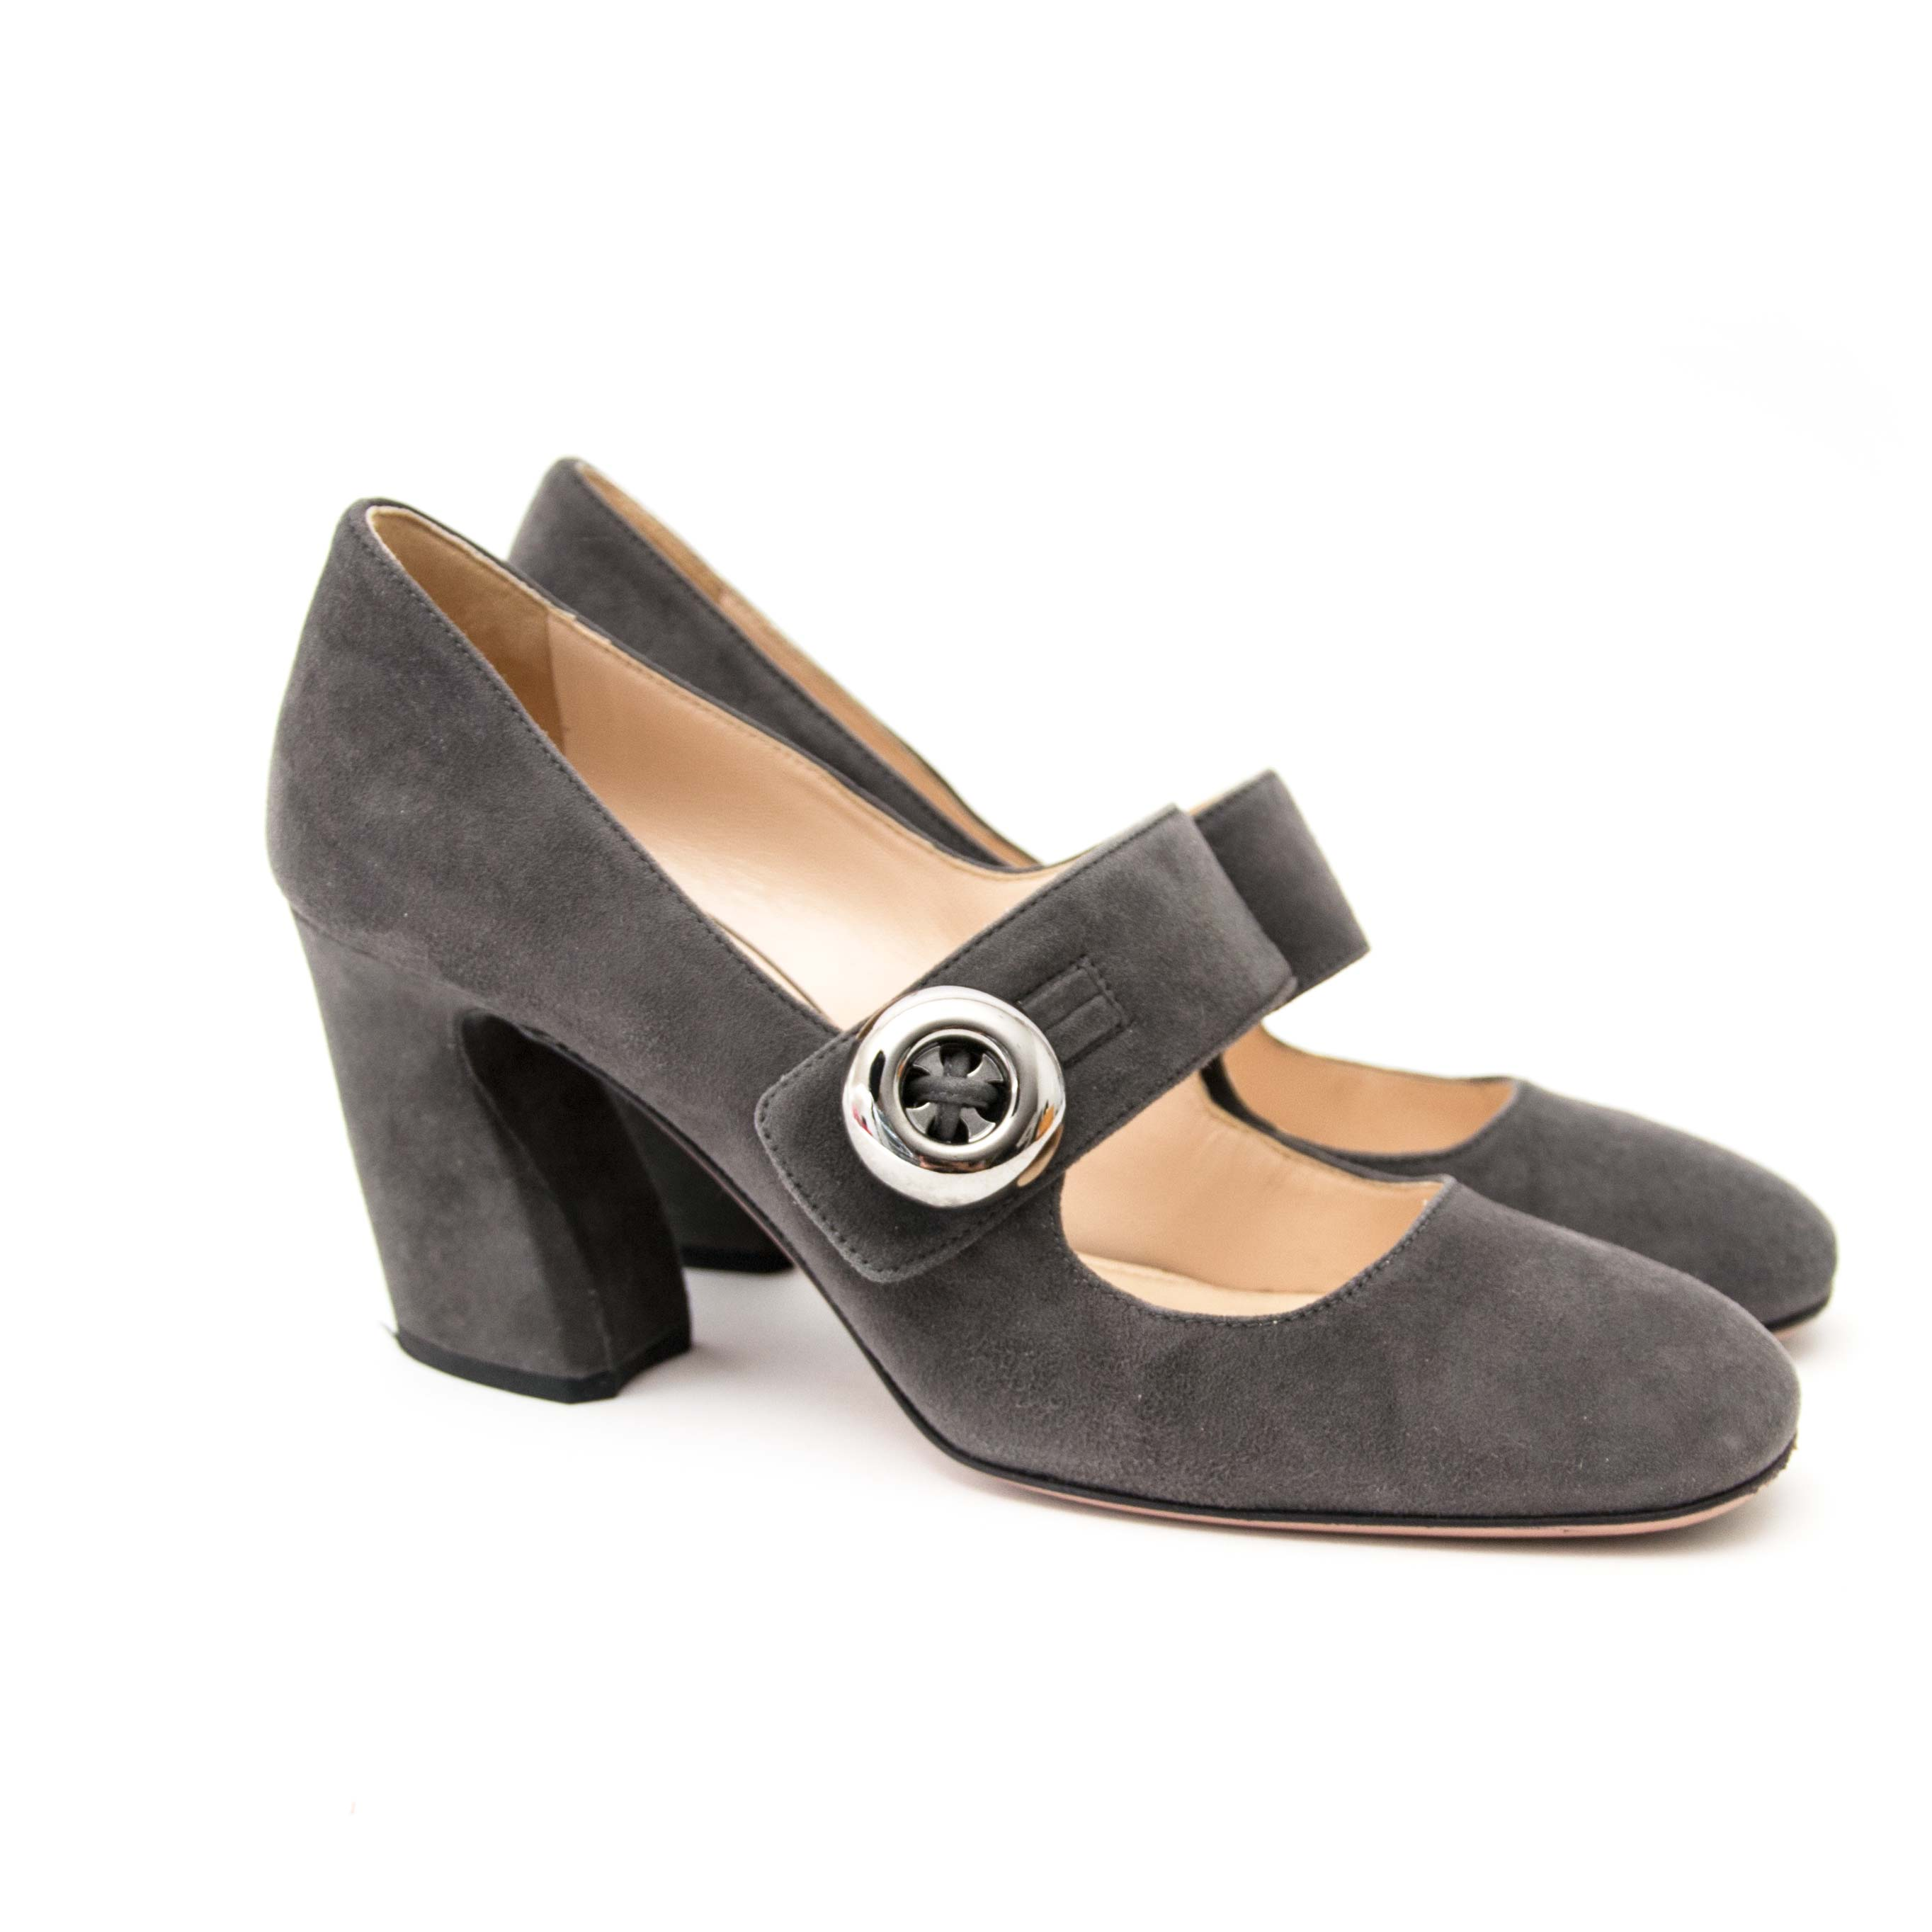 prada grey suede heels now online at labellov.com for the best price